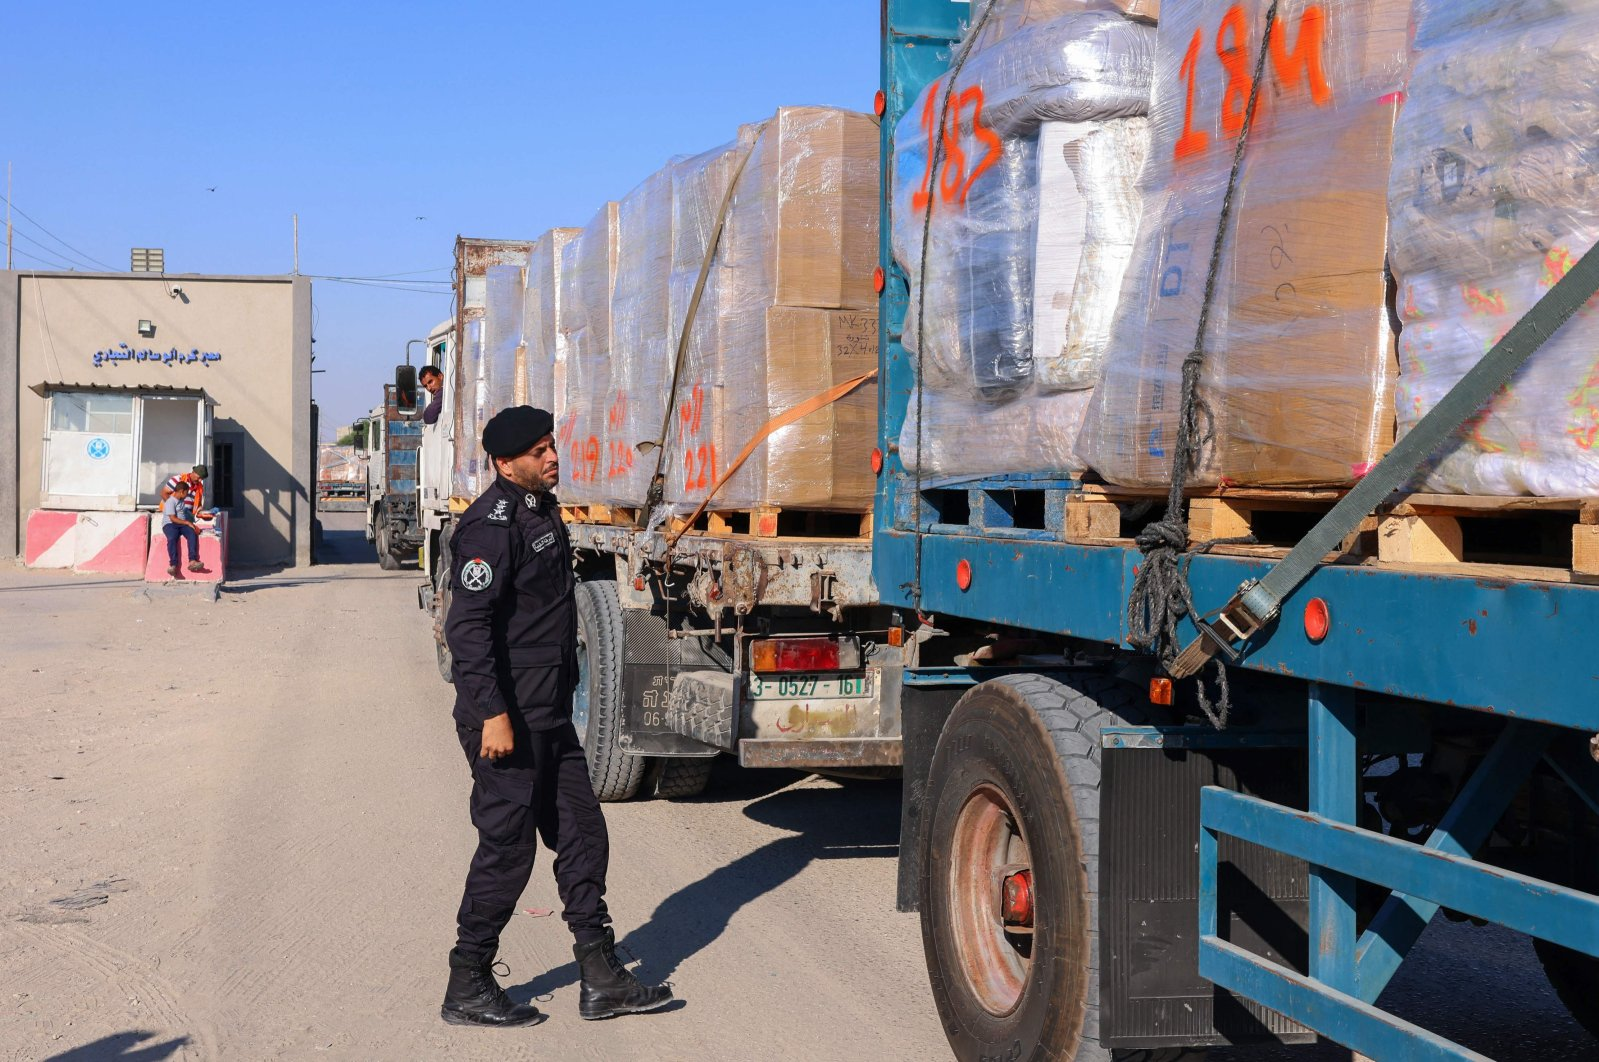 A Palestinian police officer searches a truck's fabrics cargo slated for export at Kerem Shalom crossing in Rafah in the southern Gaza Strip, Palestine, June 21, 2021. (AFP Photo)